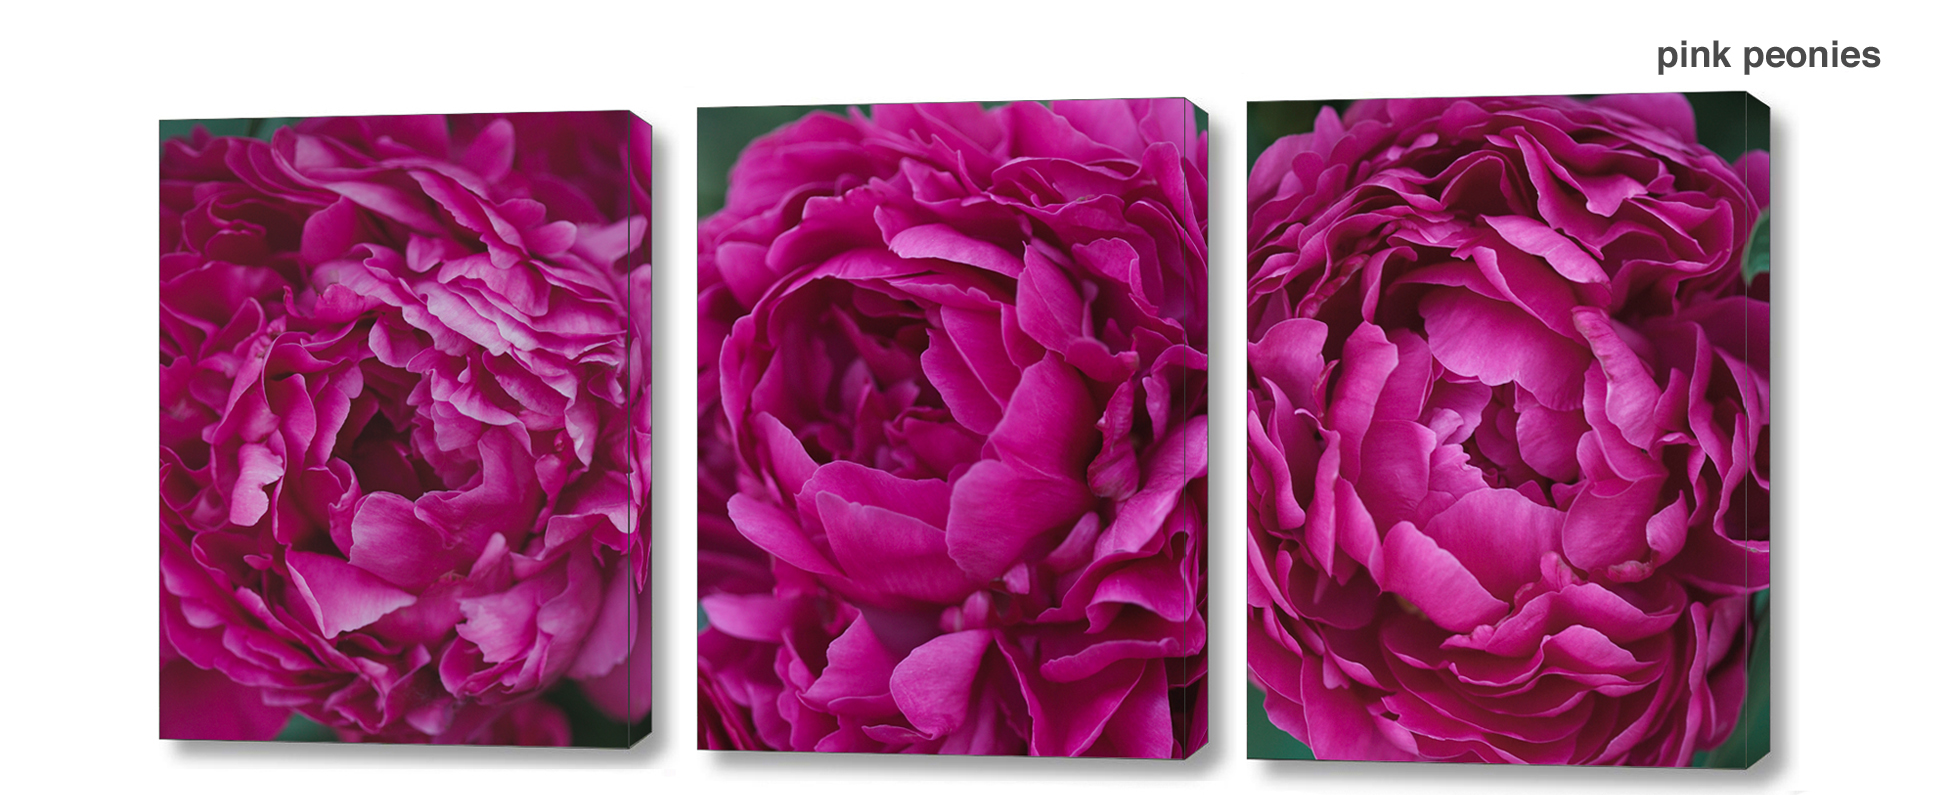 pink peony series - floral Wall Decor Macro Photography Matted & Giclée Canvas Prints